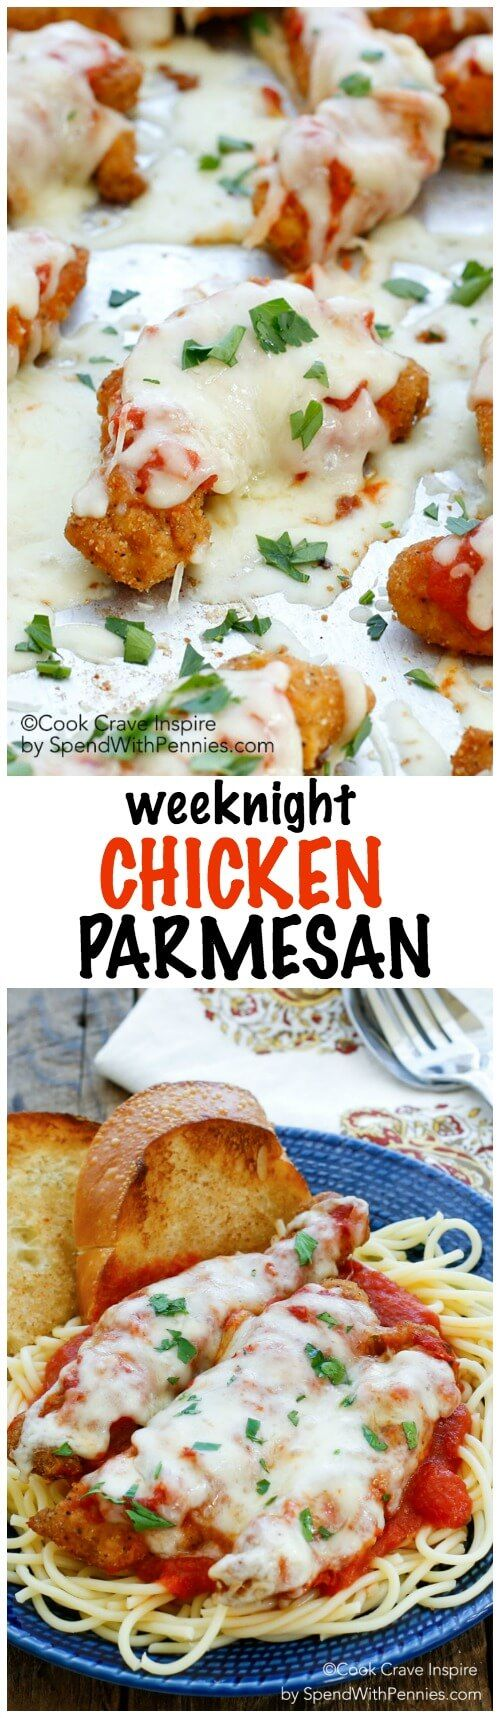 12560 best our favorite recipes images on pinterest cooking food this weeknight chicken parmesan is a delicious weeknight meal ready in under 30 minutes tender forumfinder Choice Image